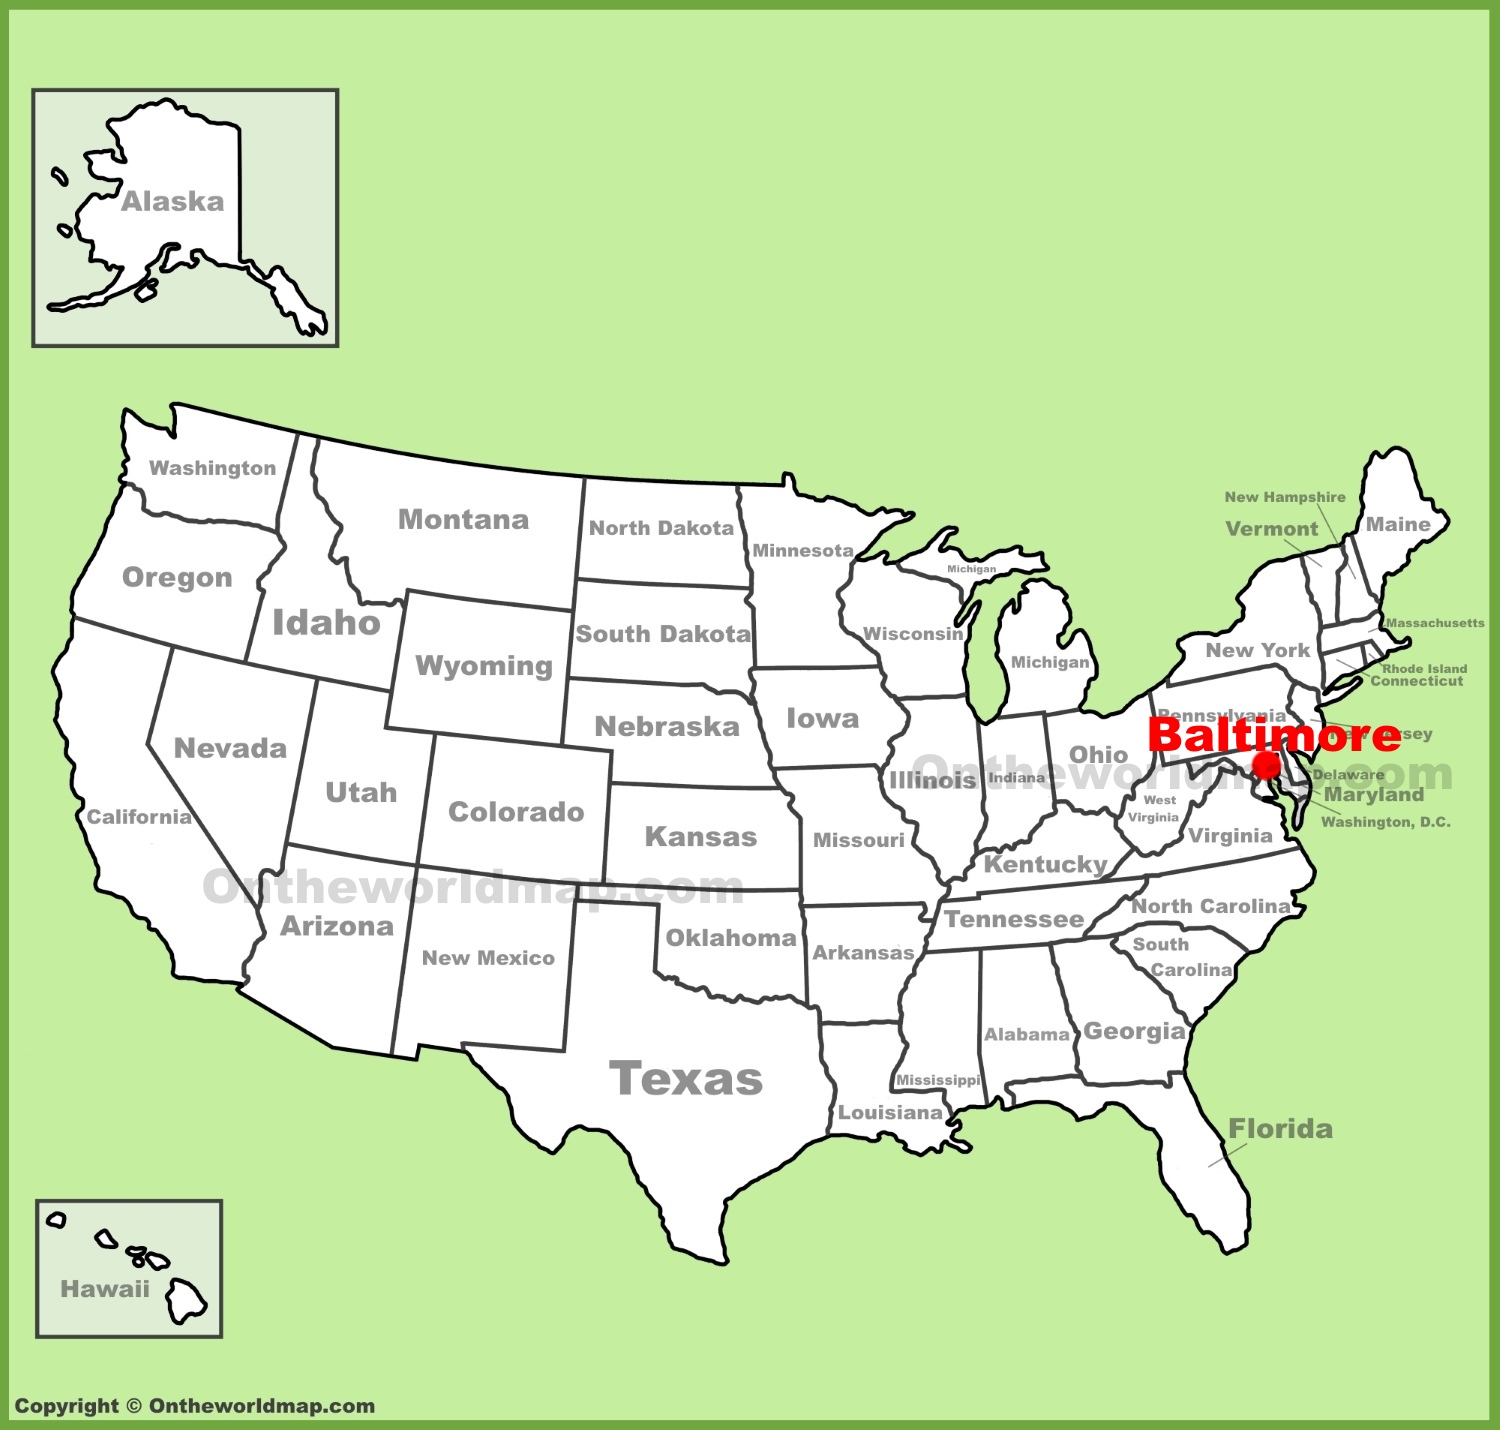 Baltimore location on the U.S. Map on pittsburgh map, charleston map, buffalo map, usa map, richmond map, galveston map, billings map, detroit map, bangor map, phoenix map, boston map, anchorage map, anne arundel map, chesapeake bay map, st. louis map, norfolk map, minneapolis map, randallstown map, maryland map, d.c. map,